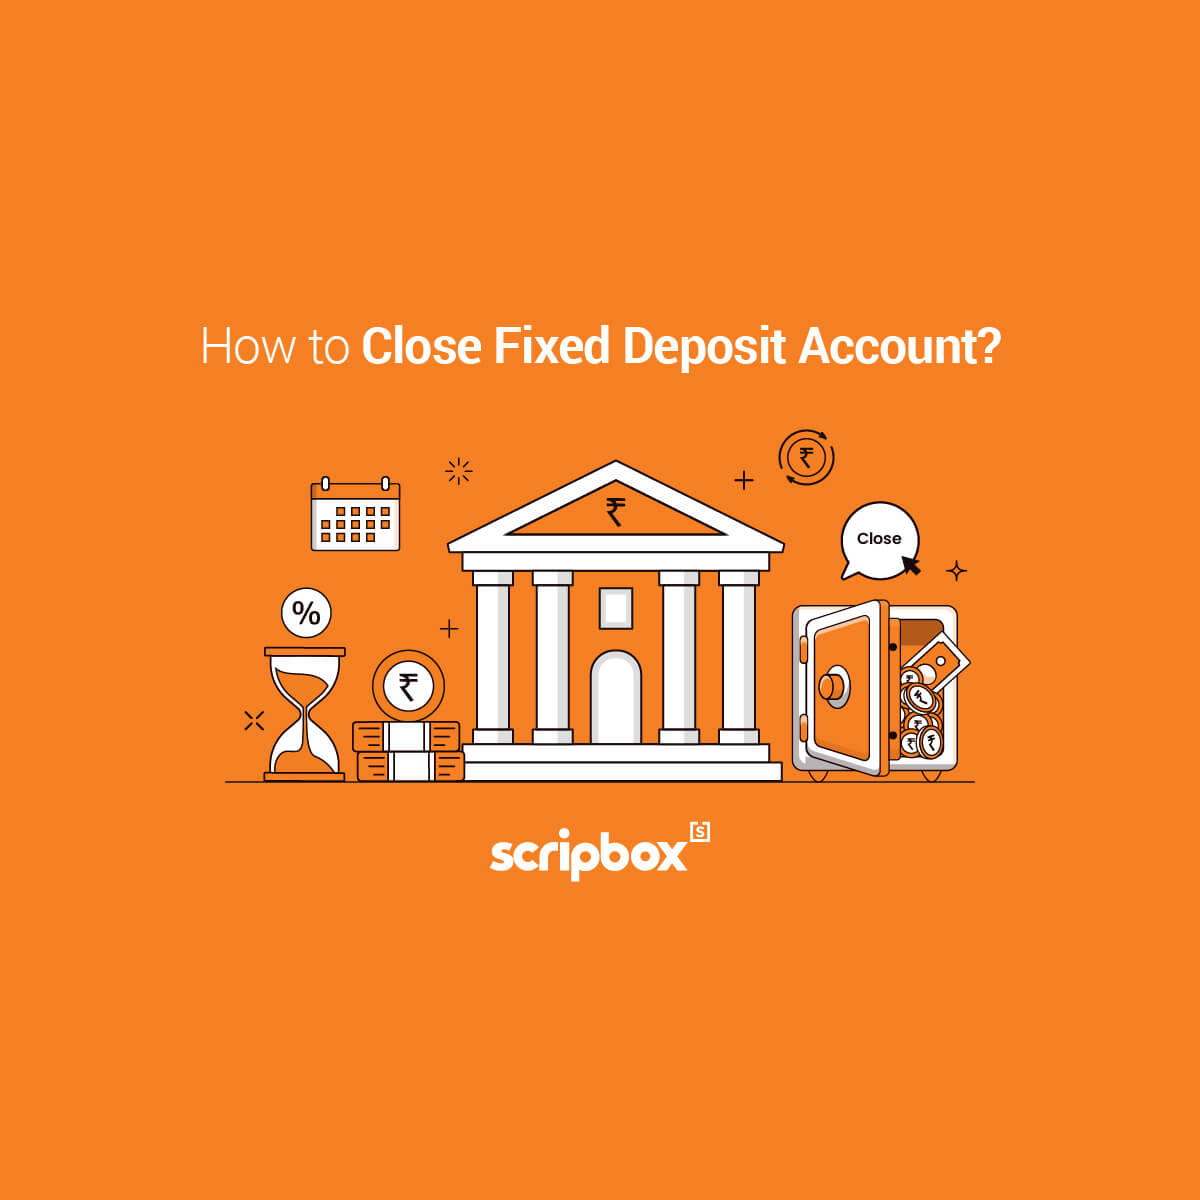 how to close fixed deposit account